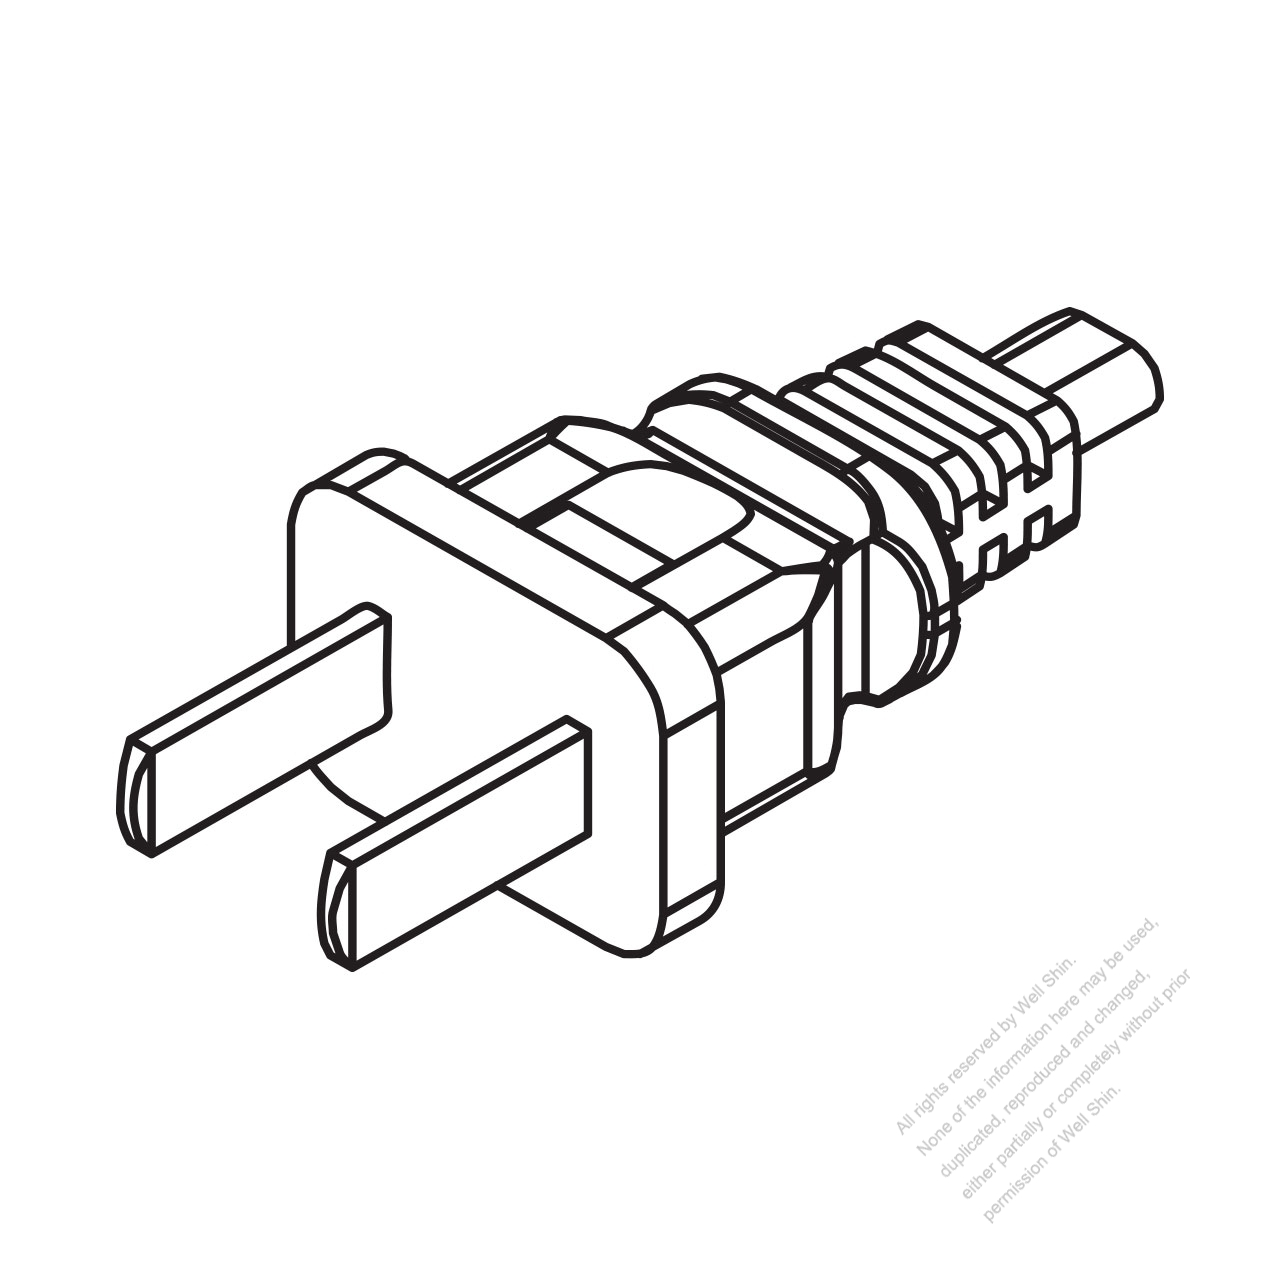 Firewire Cable Diagram